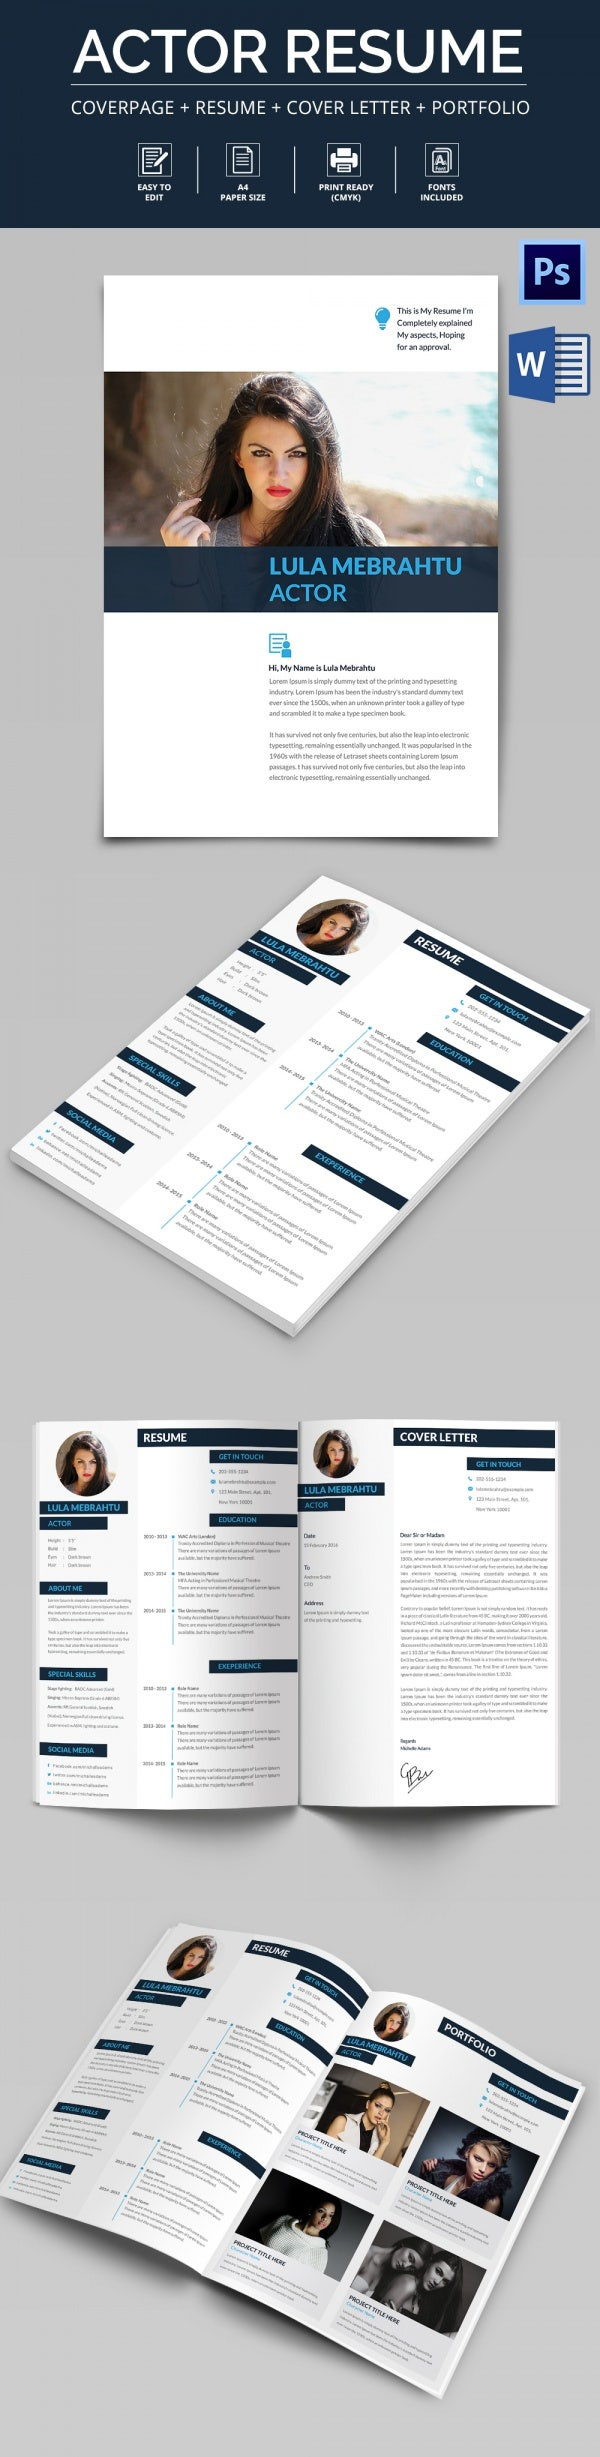 Actor Resume Cover Letter Portfolio Template Free Premium